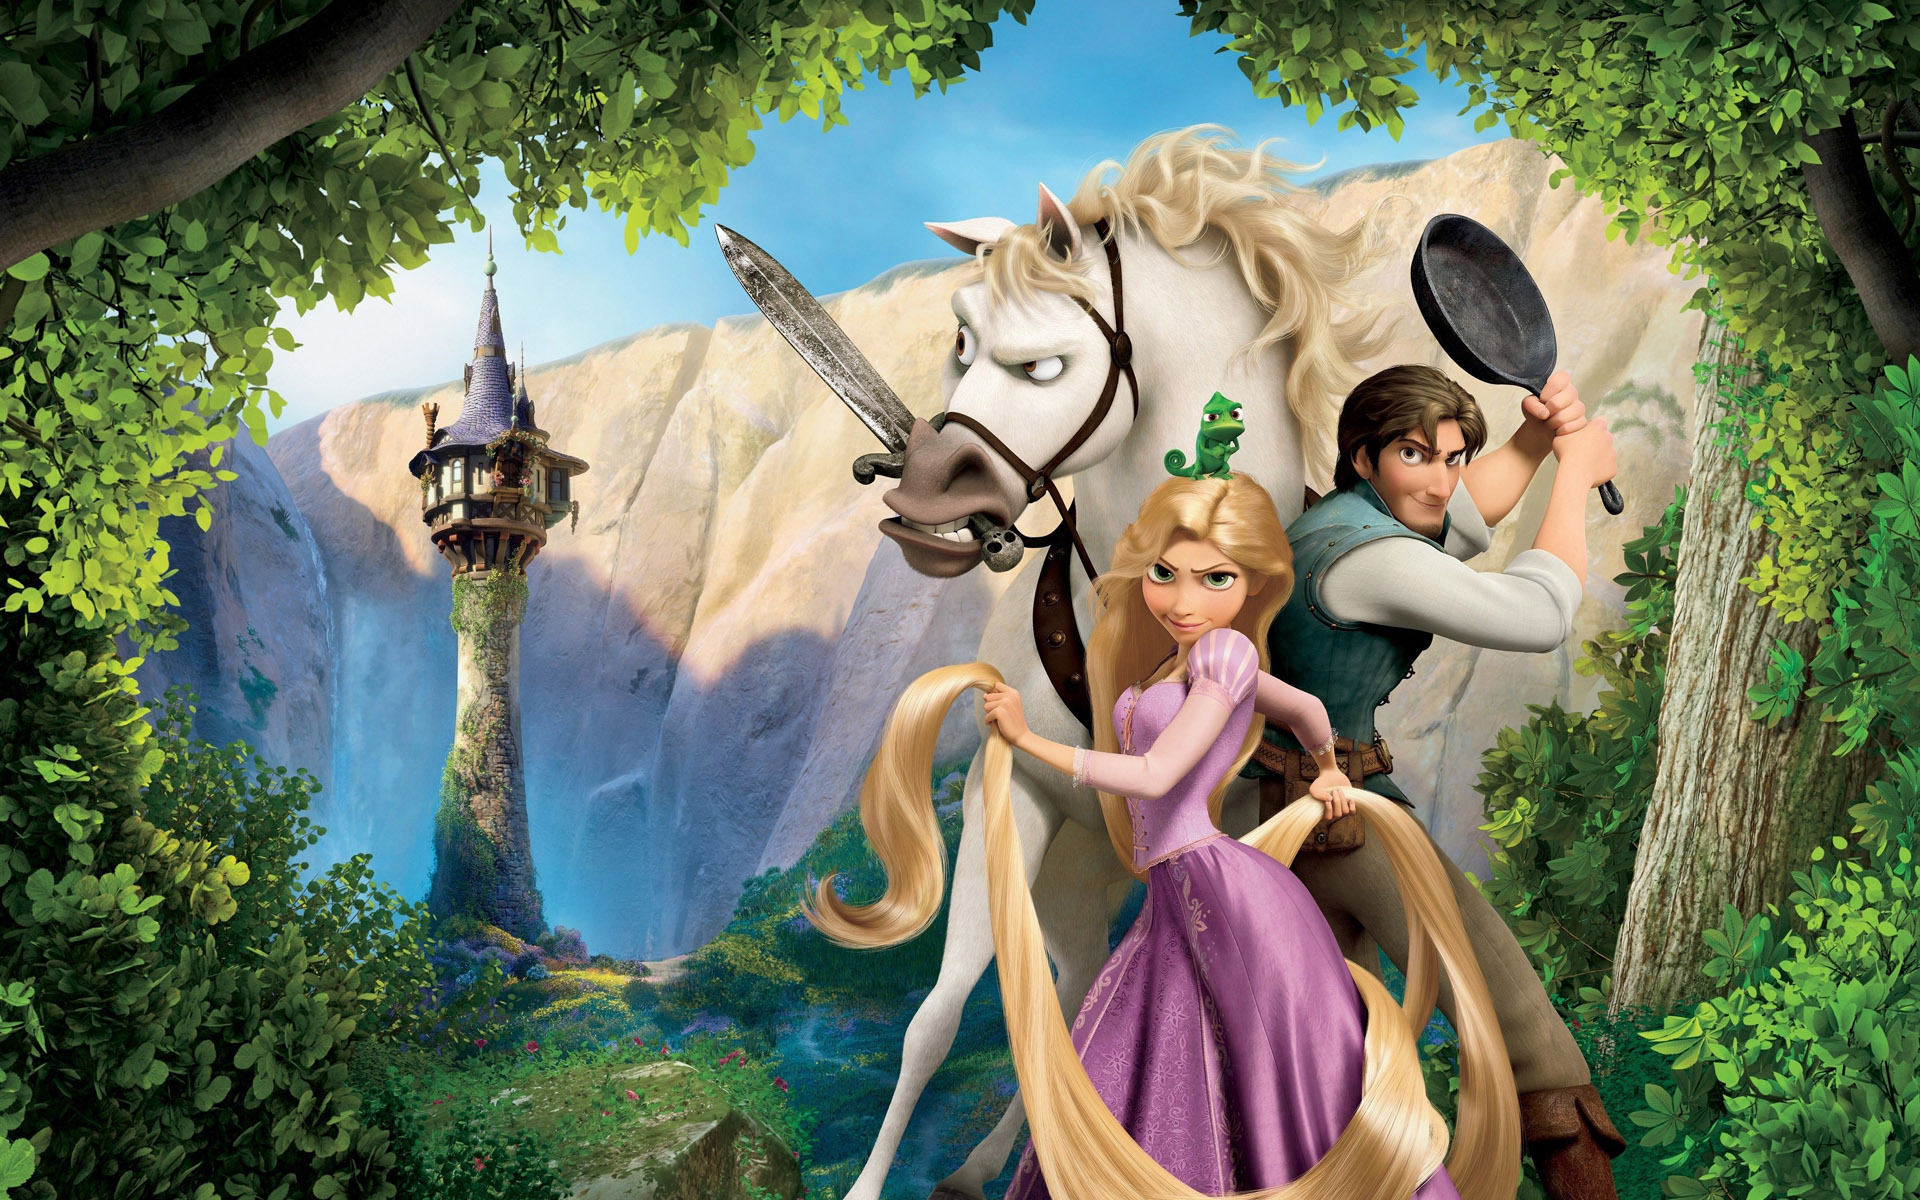 Download image Disney Tangled Desktop Wallpaper Background PC 1920x1200